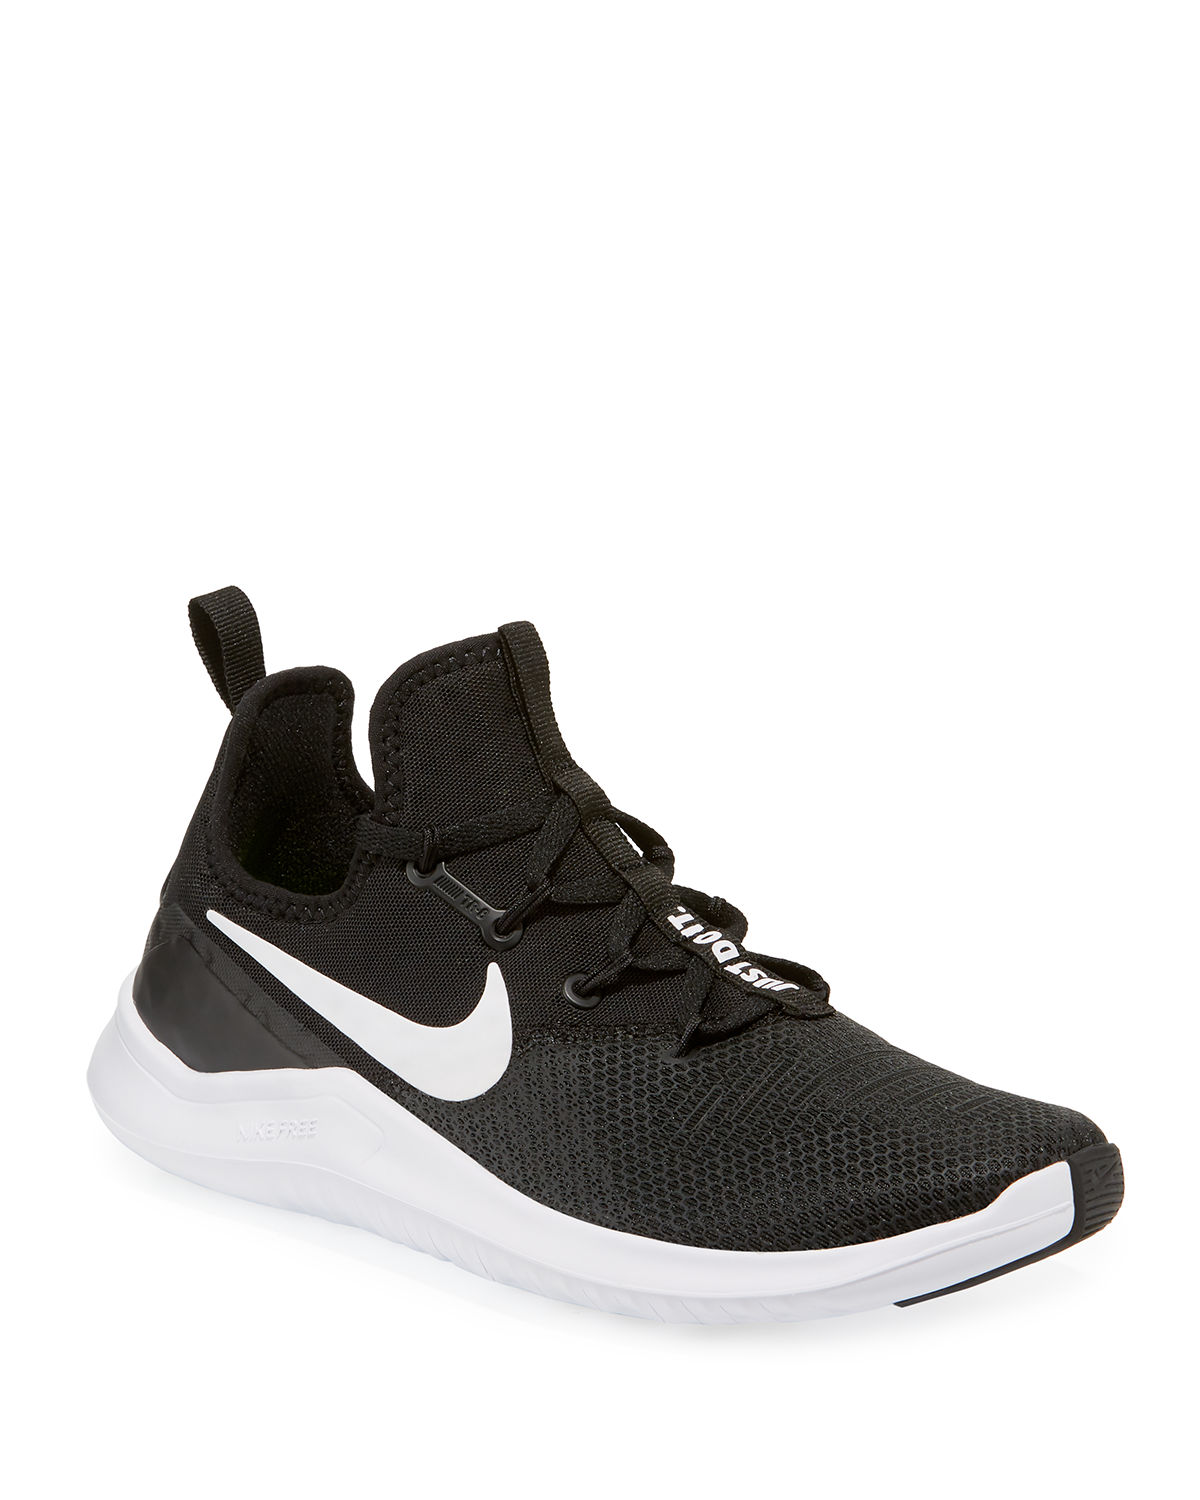 027f19559777 Nike Free FlyKnit Colorblock Trainer Sneakers